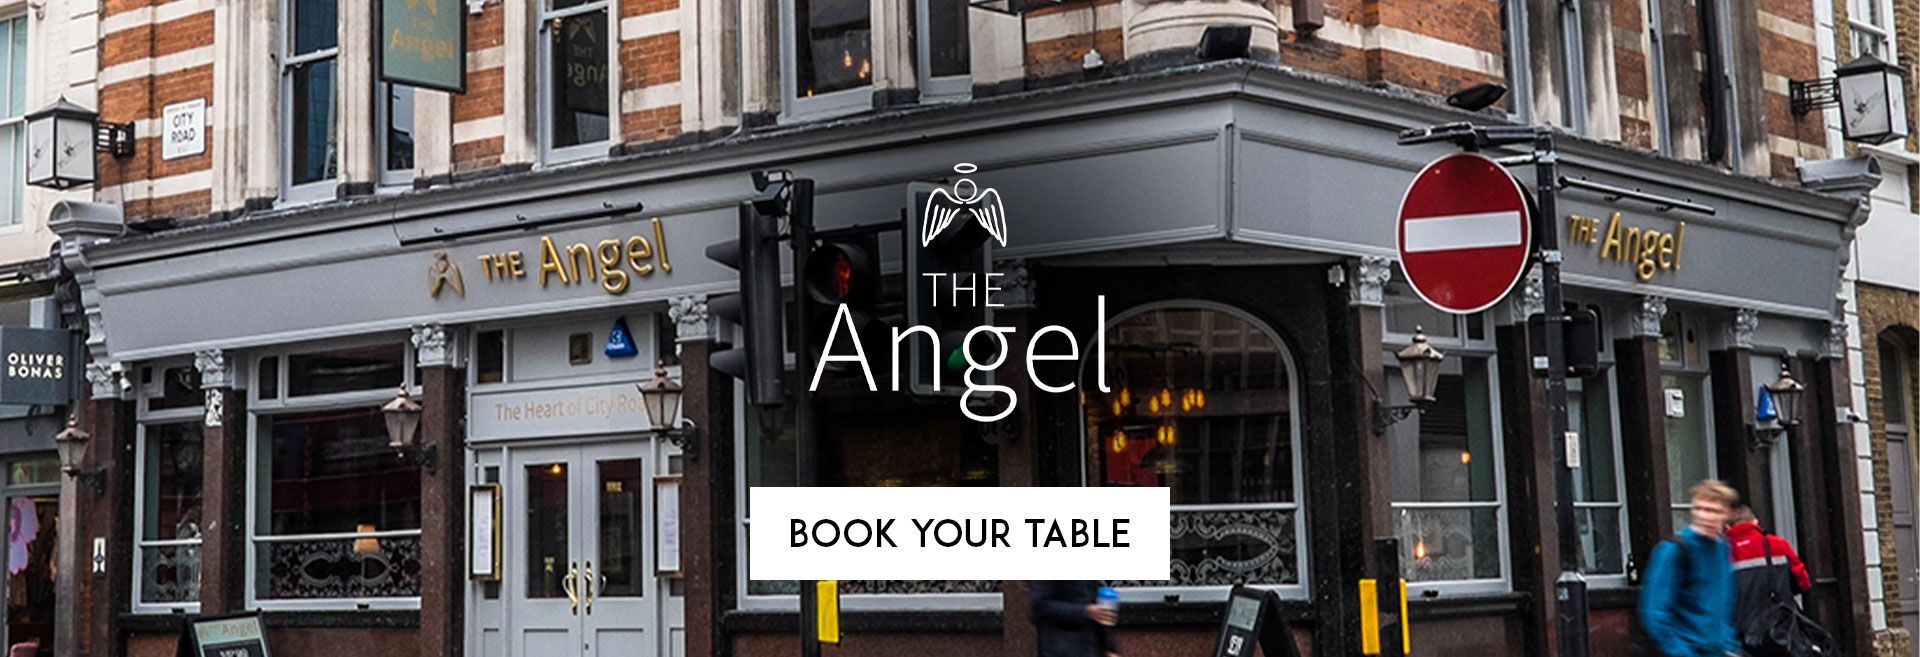 Book Your Table The Angel